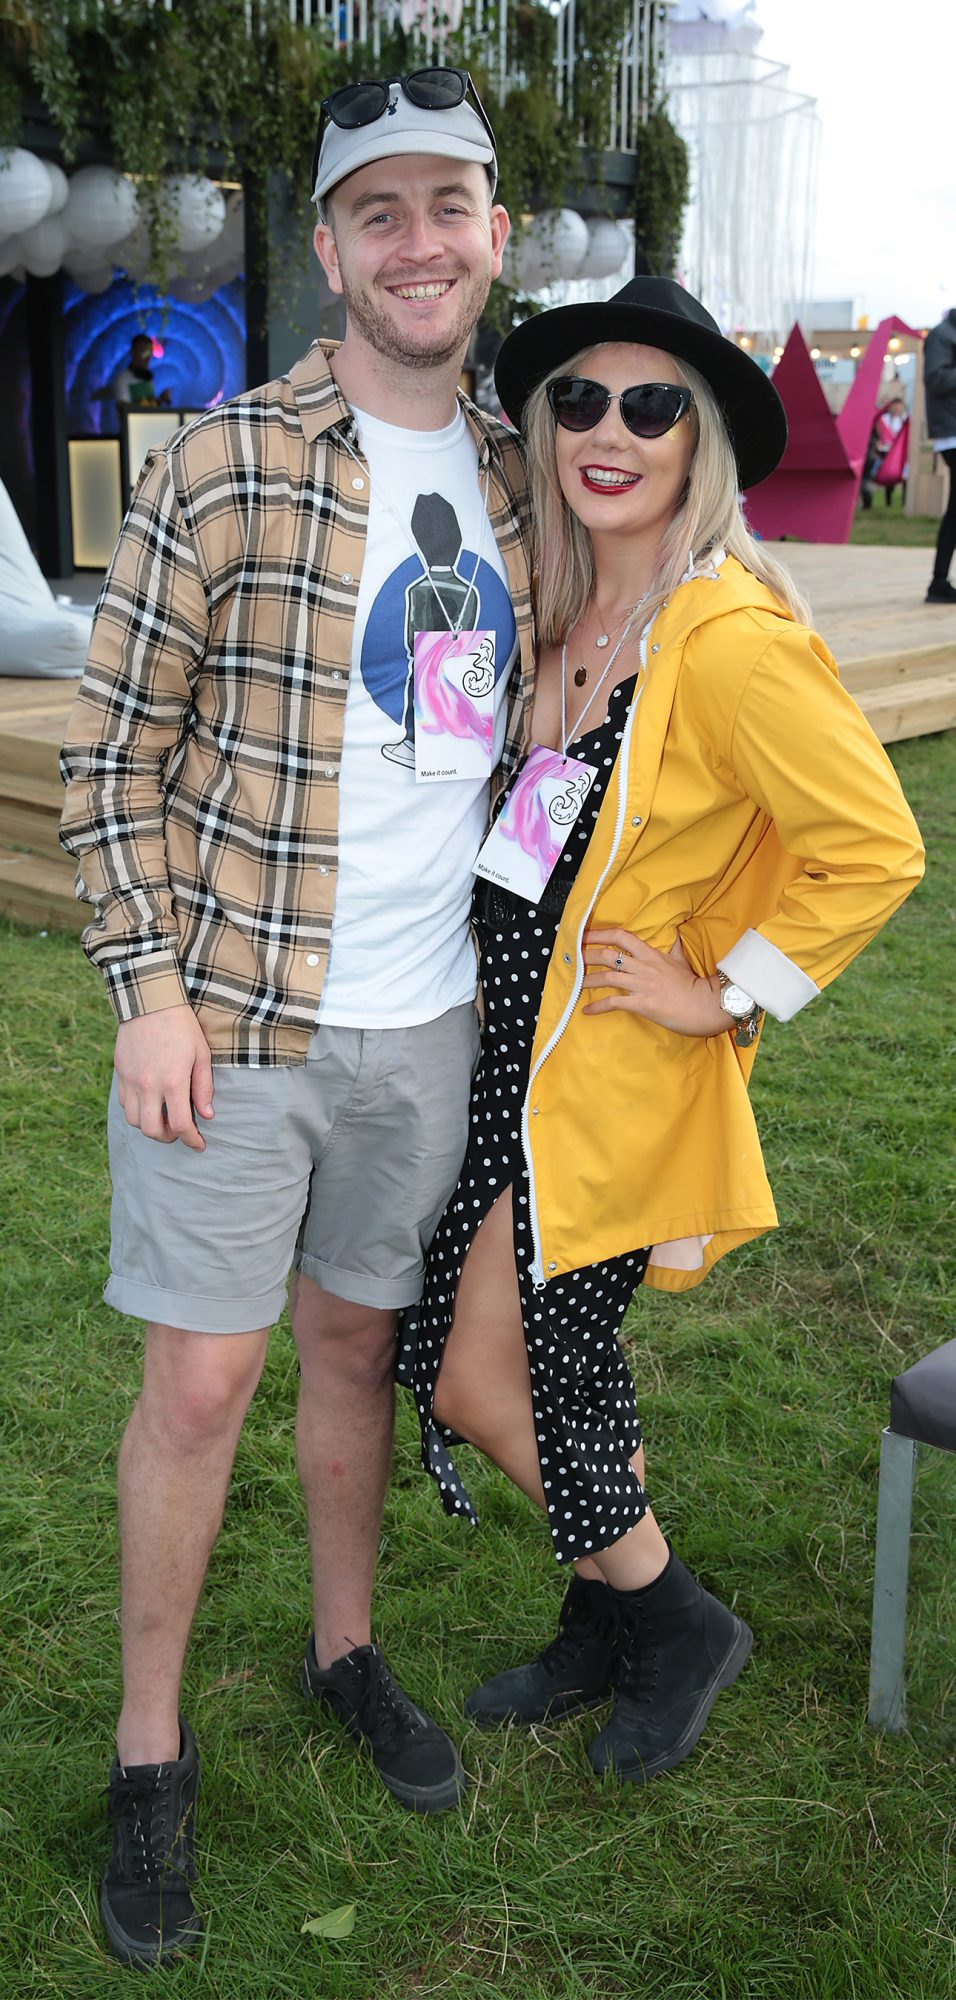 Graham McConnell and Jodie Fitzpatrick at Three's Charge & Chill at Electric Picnic at Stradbally, Co. Laois. 